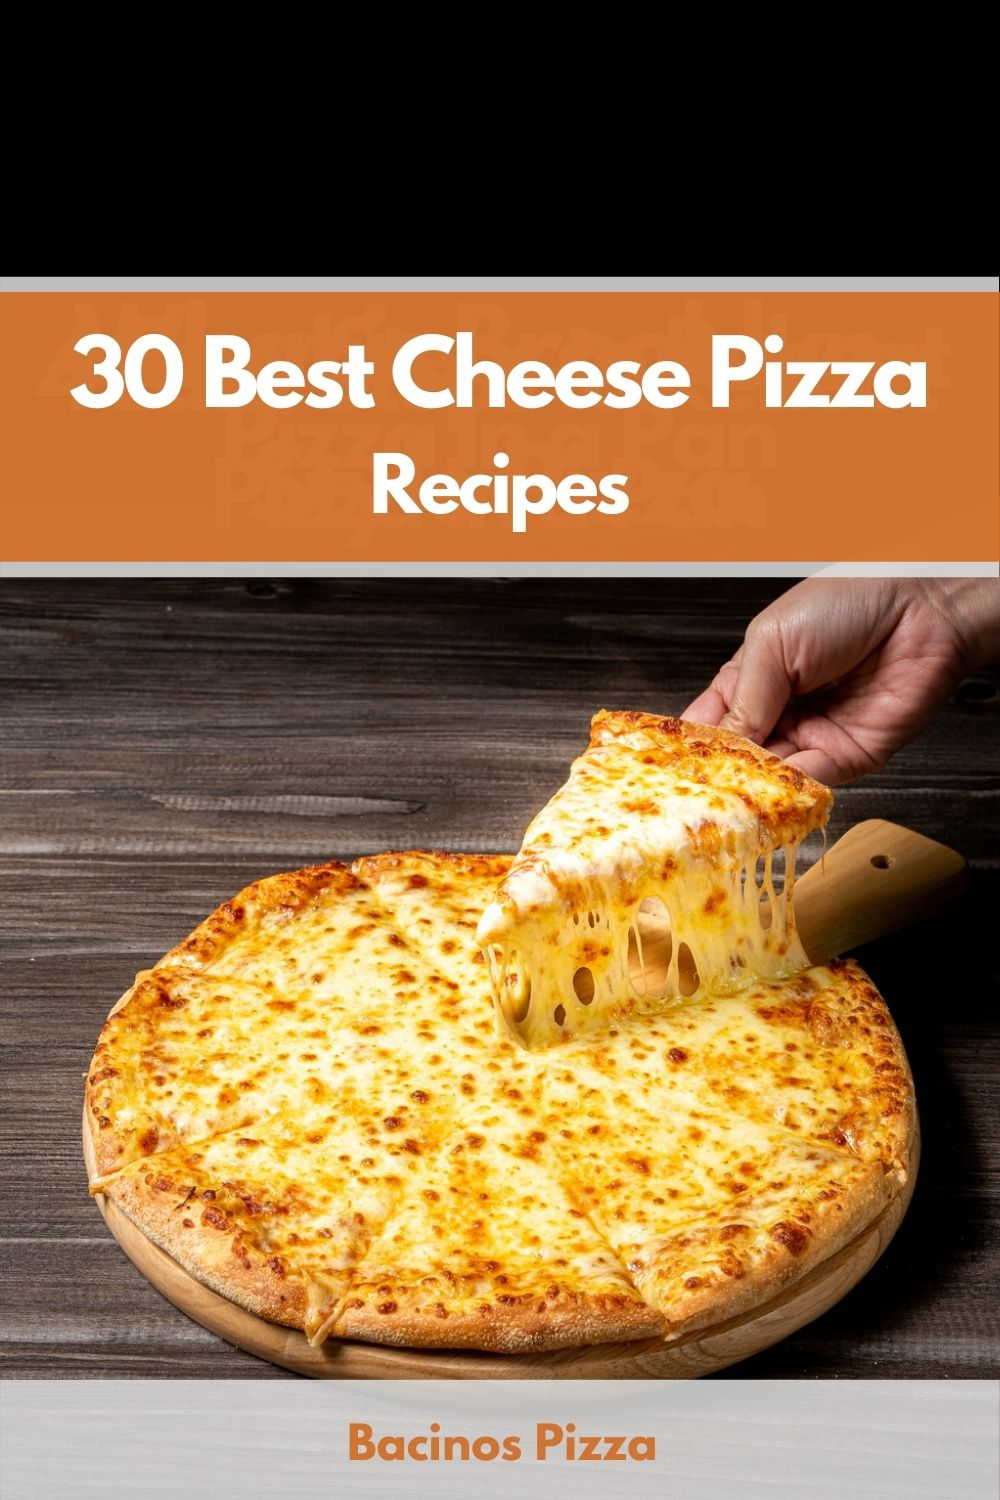 30 Best Cheese Pizza Recipes pin